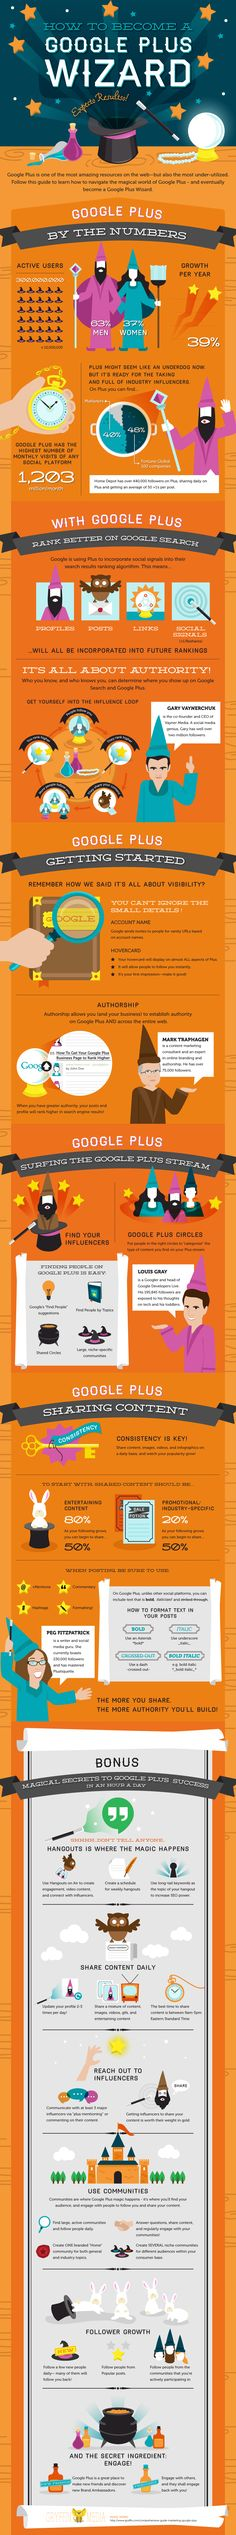 How To Become a Google+ Wizard